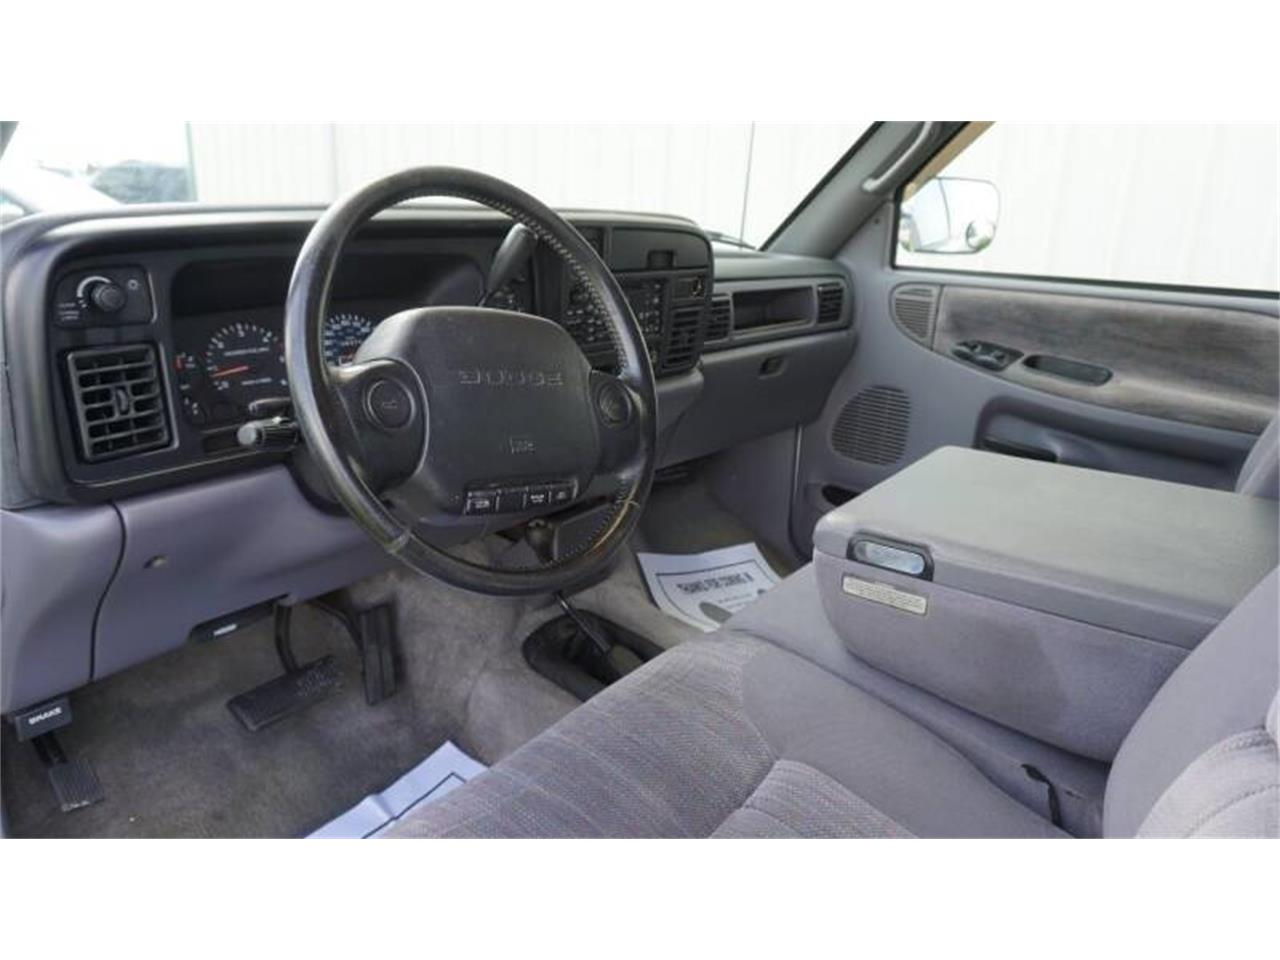 1997 Dodge Ram 2500 (CC-1343113) for sale in Clarence, Iowa